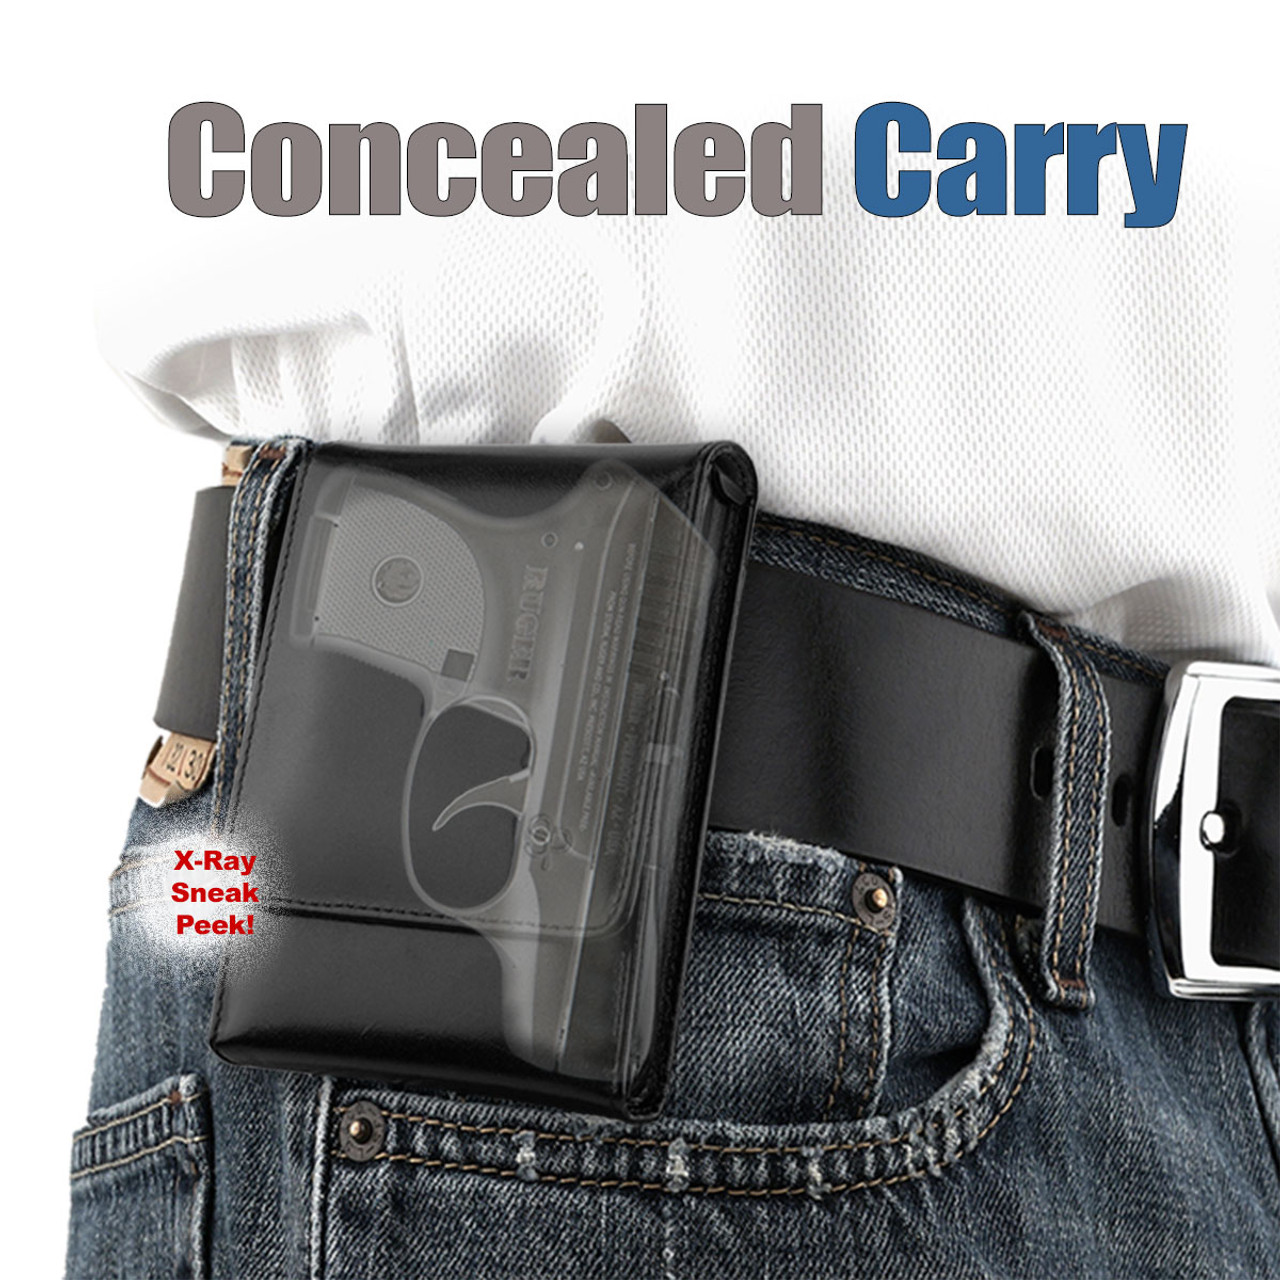 Kahr CW40 Concealed Carry Holster (Belt Loop)